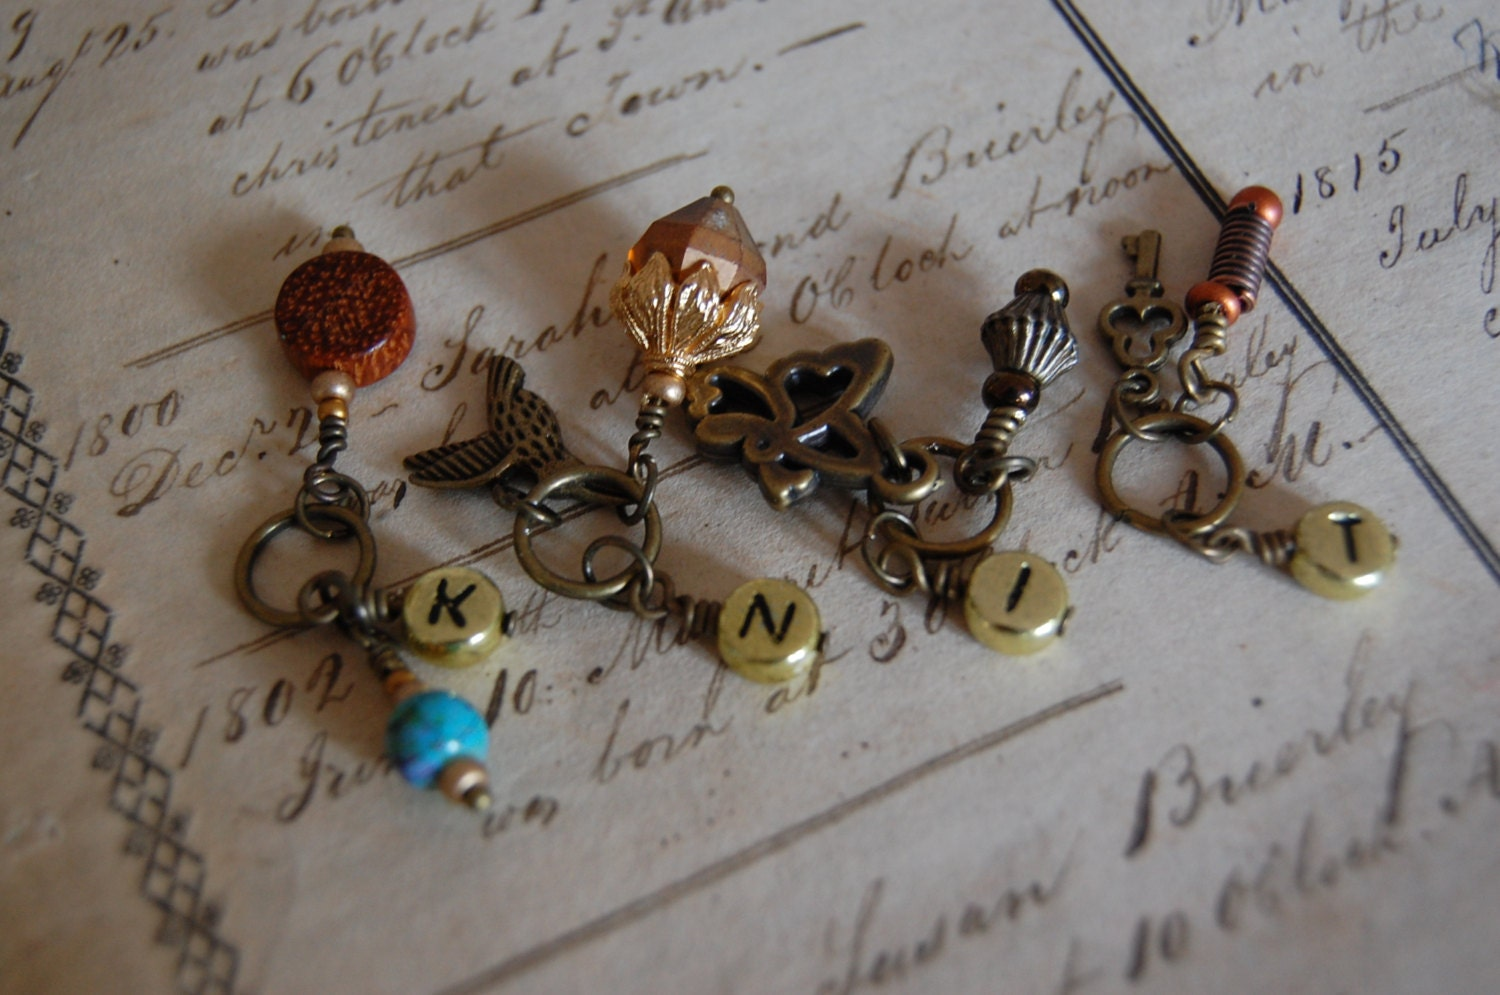 Knitting Markers Etsy : Steampunk quot knit stitch markers from beyondbrass on etsy